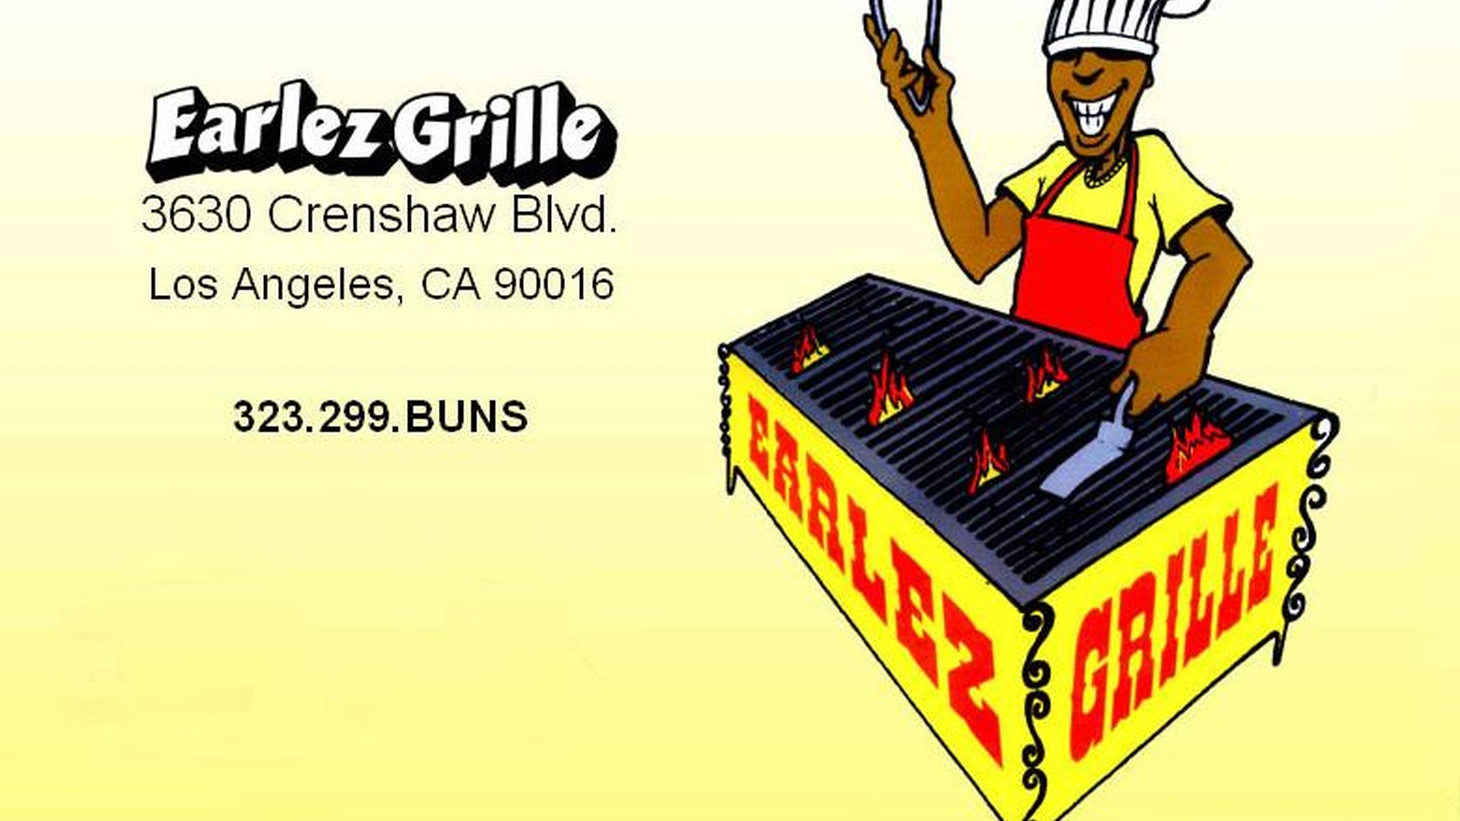 LA Weekly columnist and Pulitzer Prize-winning food critic Jonathan Gold samples the best hot dogs in South Los Angeles at Earlez Grill...